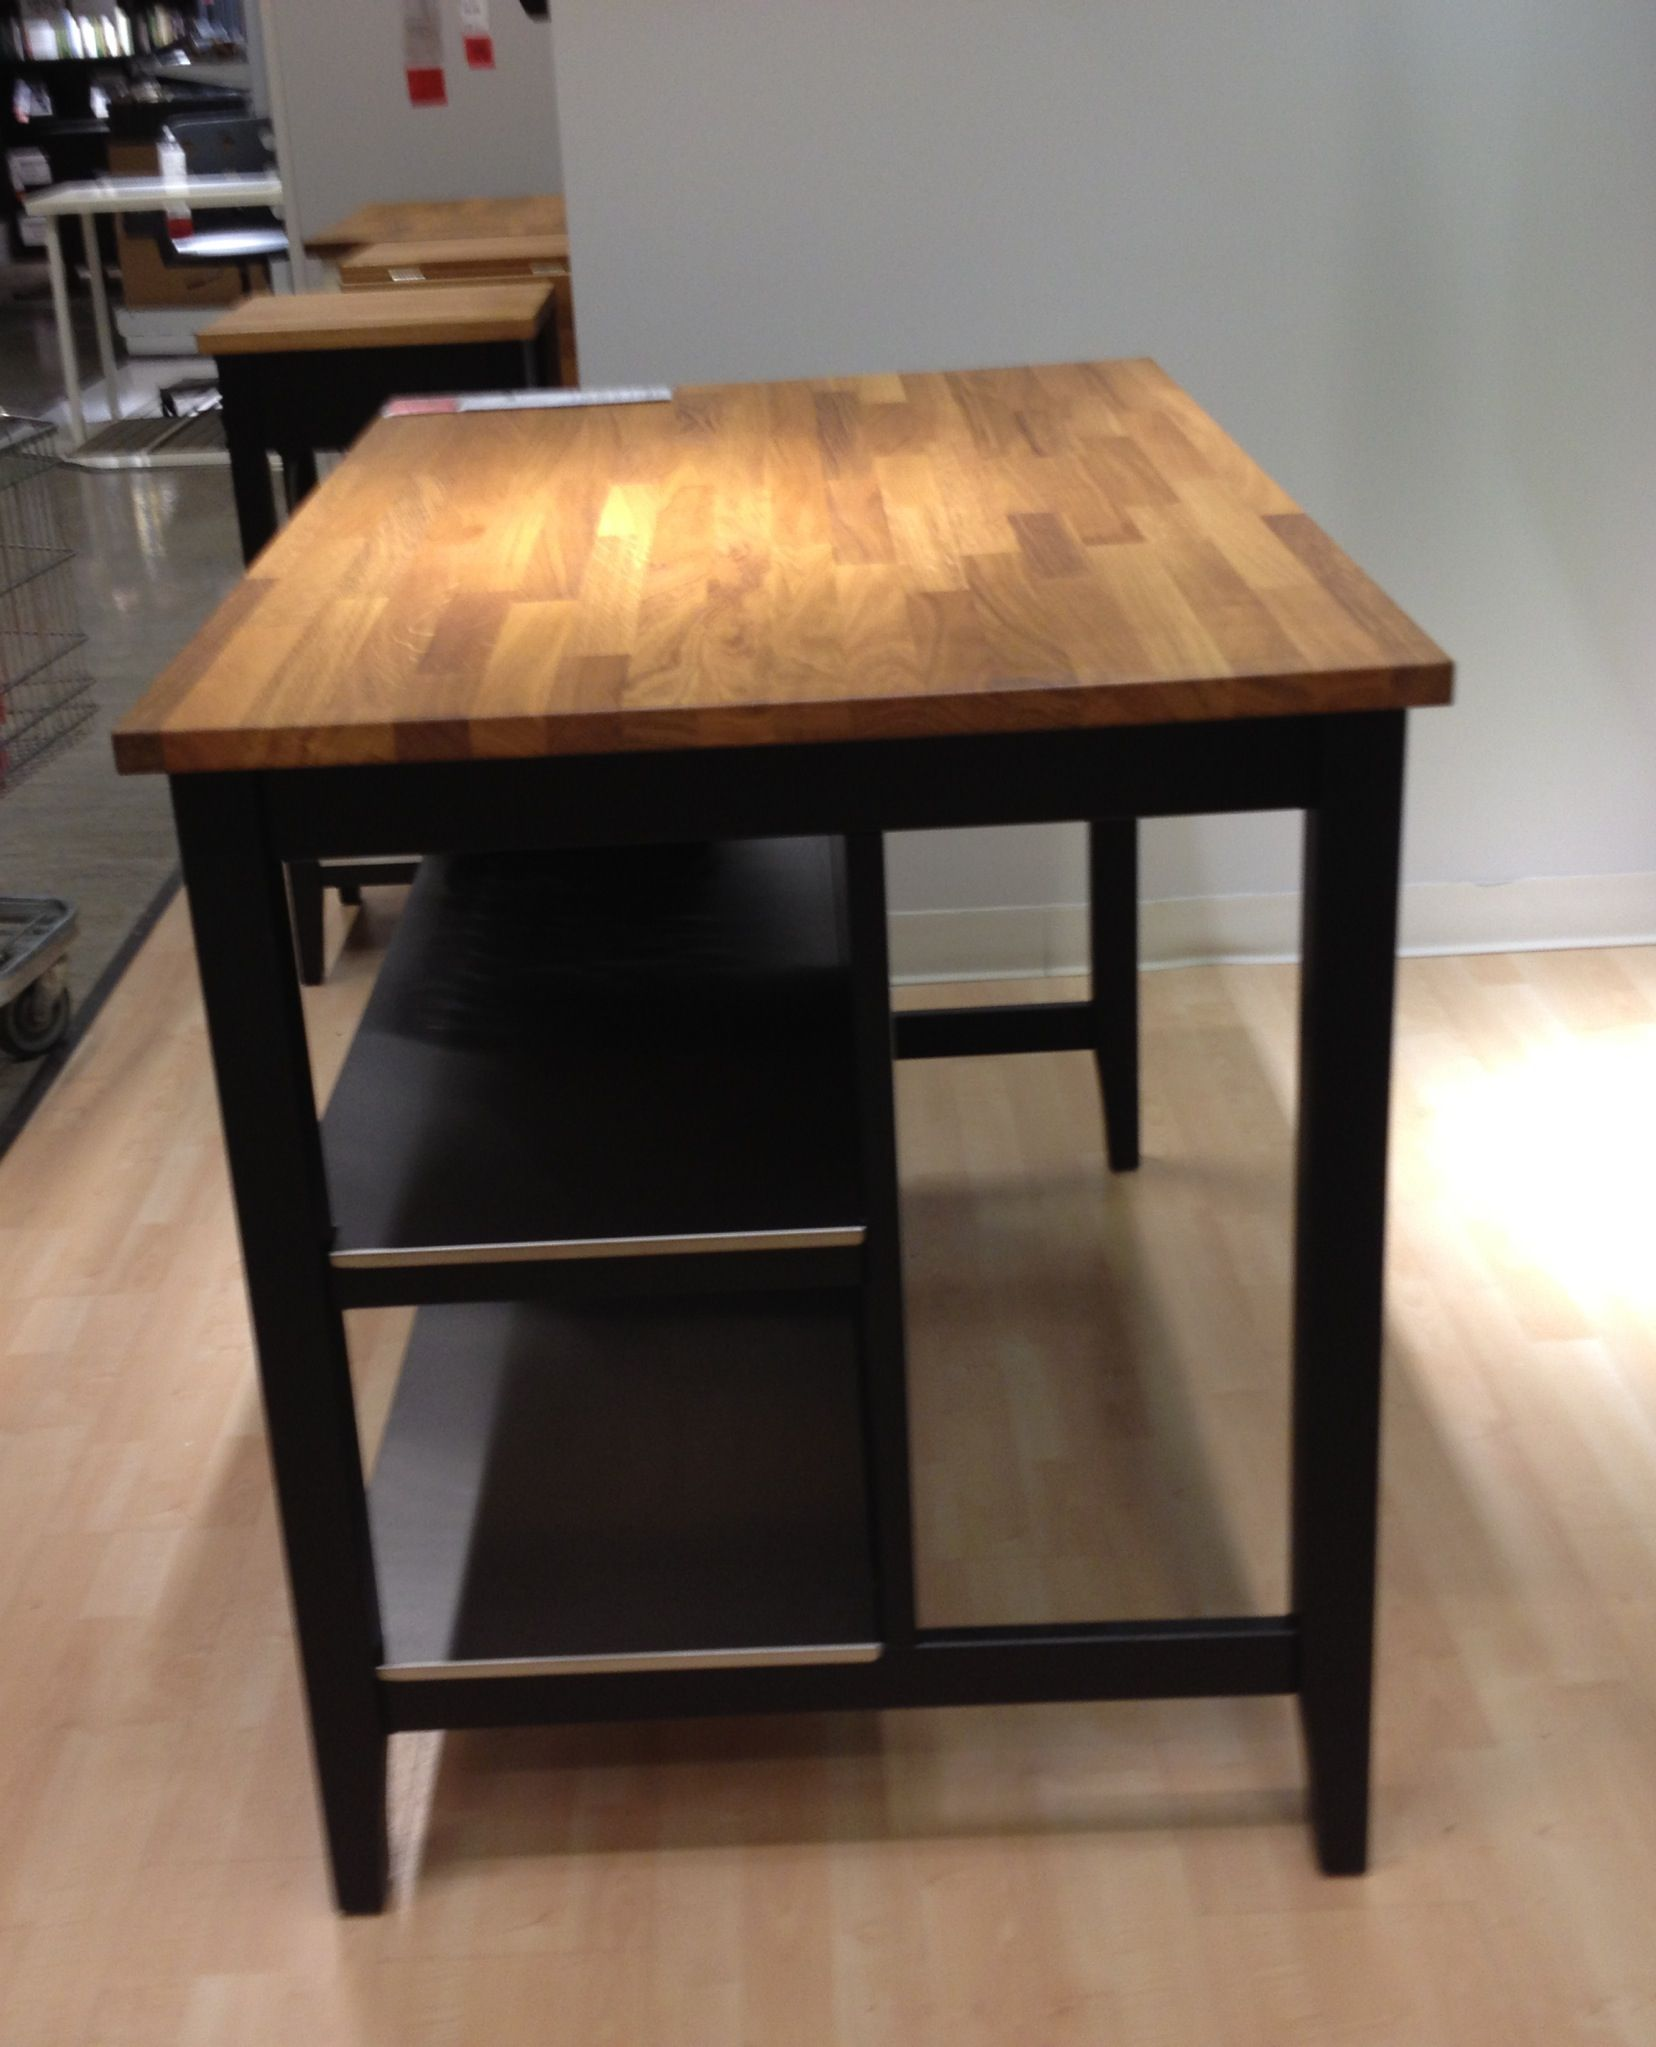 Kitchen Island Stools Ikea: $399 Would Be Good For Welcome